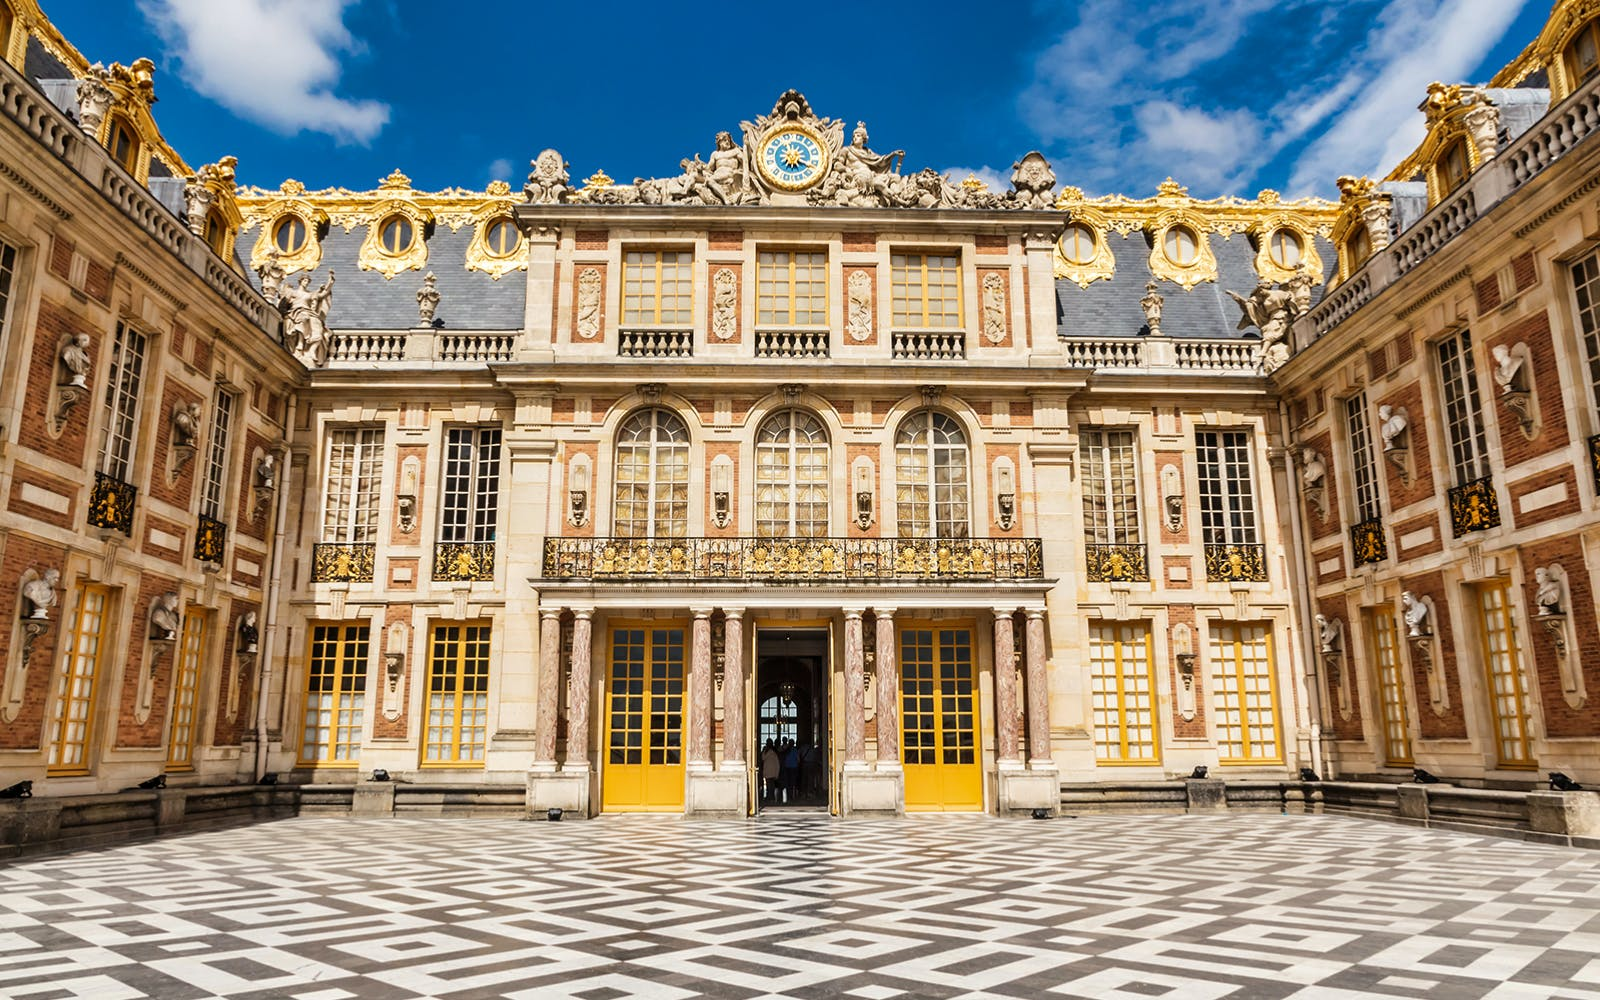 full day guided tour of castles of fontainebleau & vaux le vicomte from paris-2